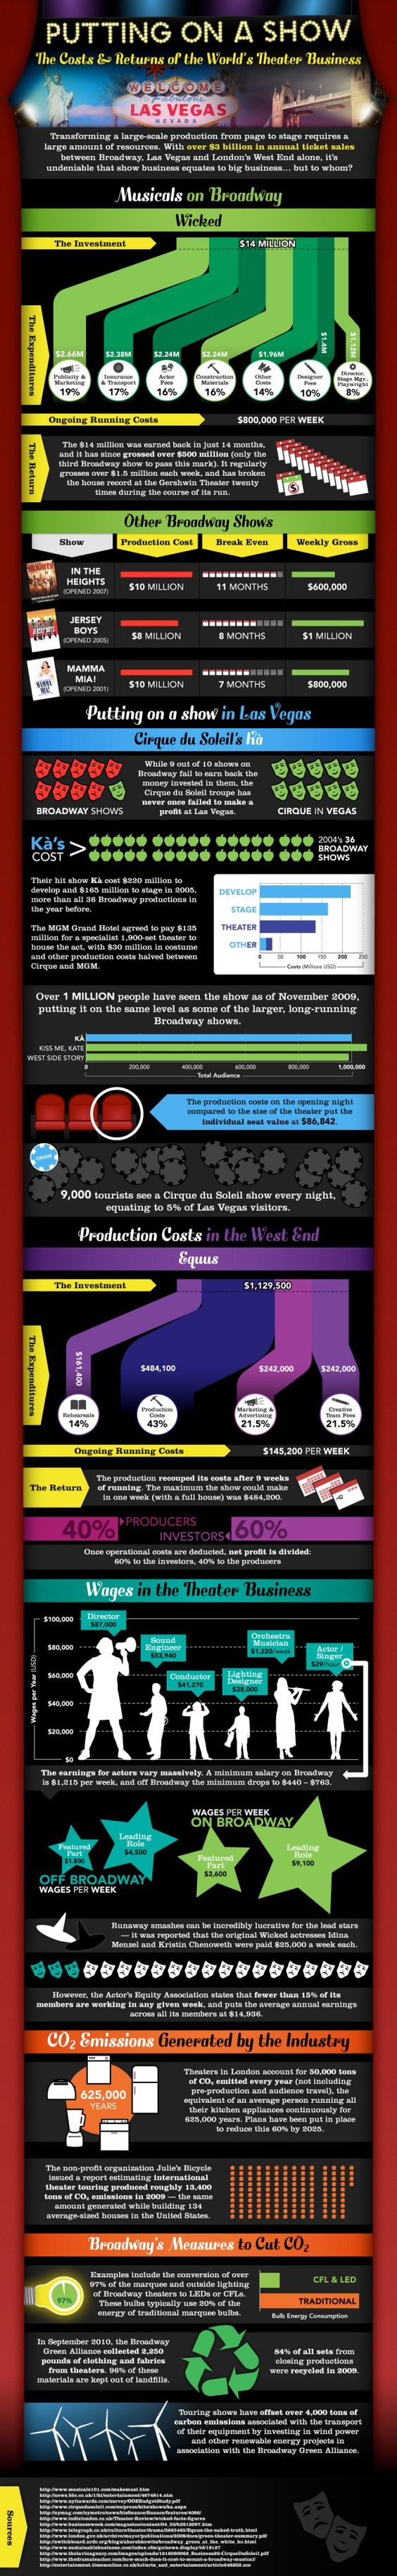 The Cost of a Musical on Broadway Infographic